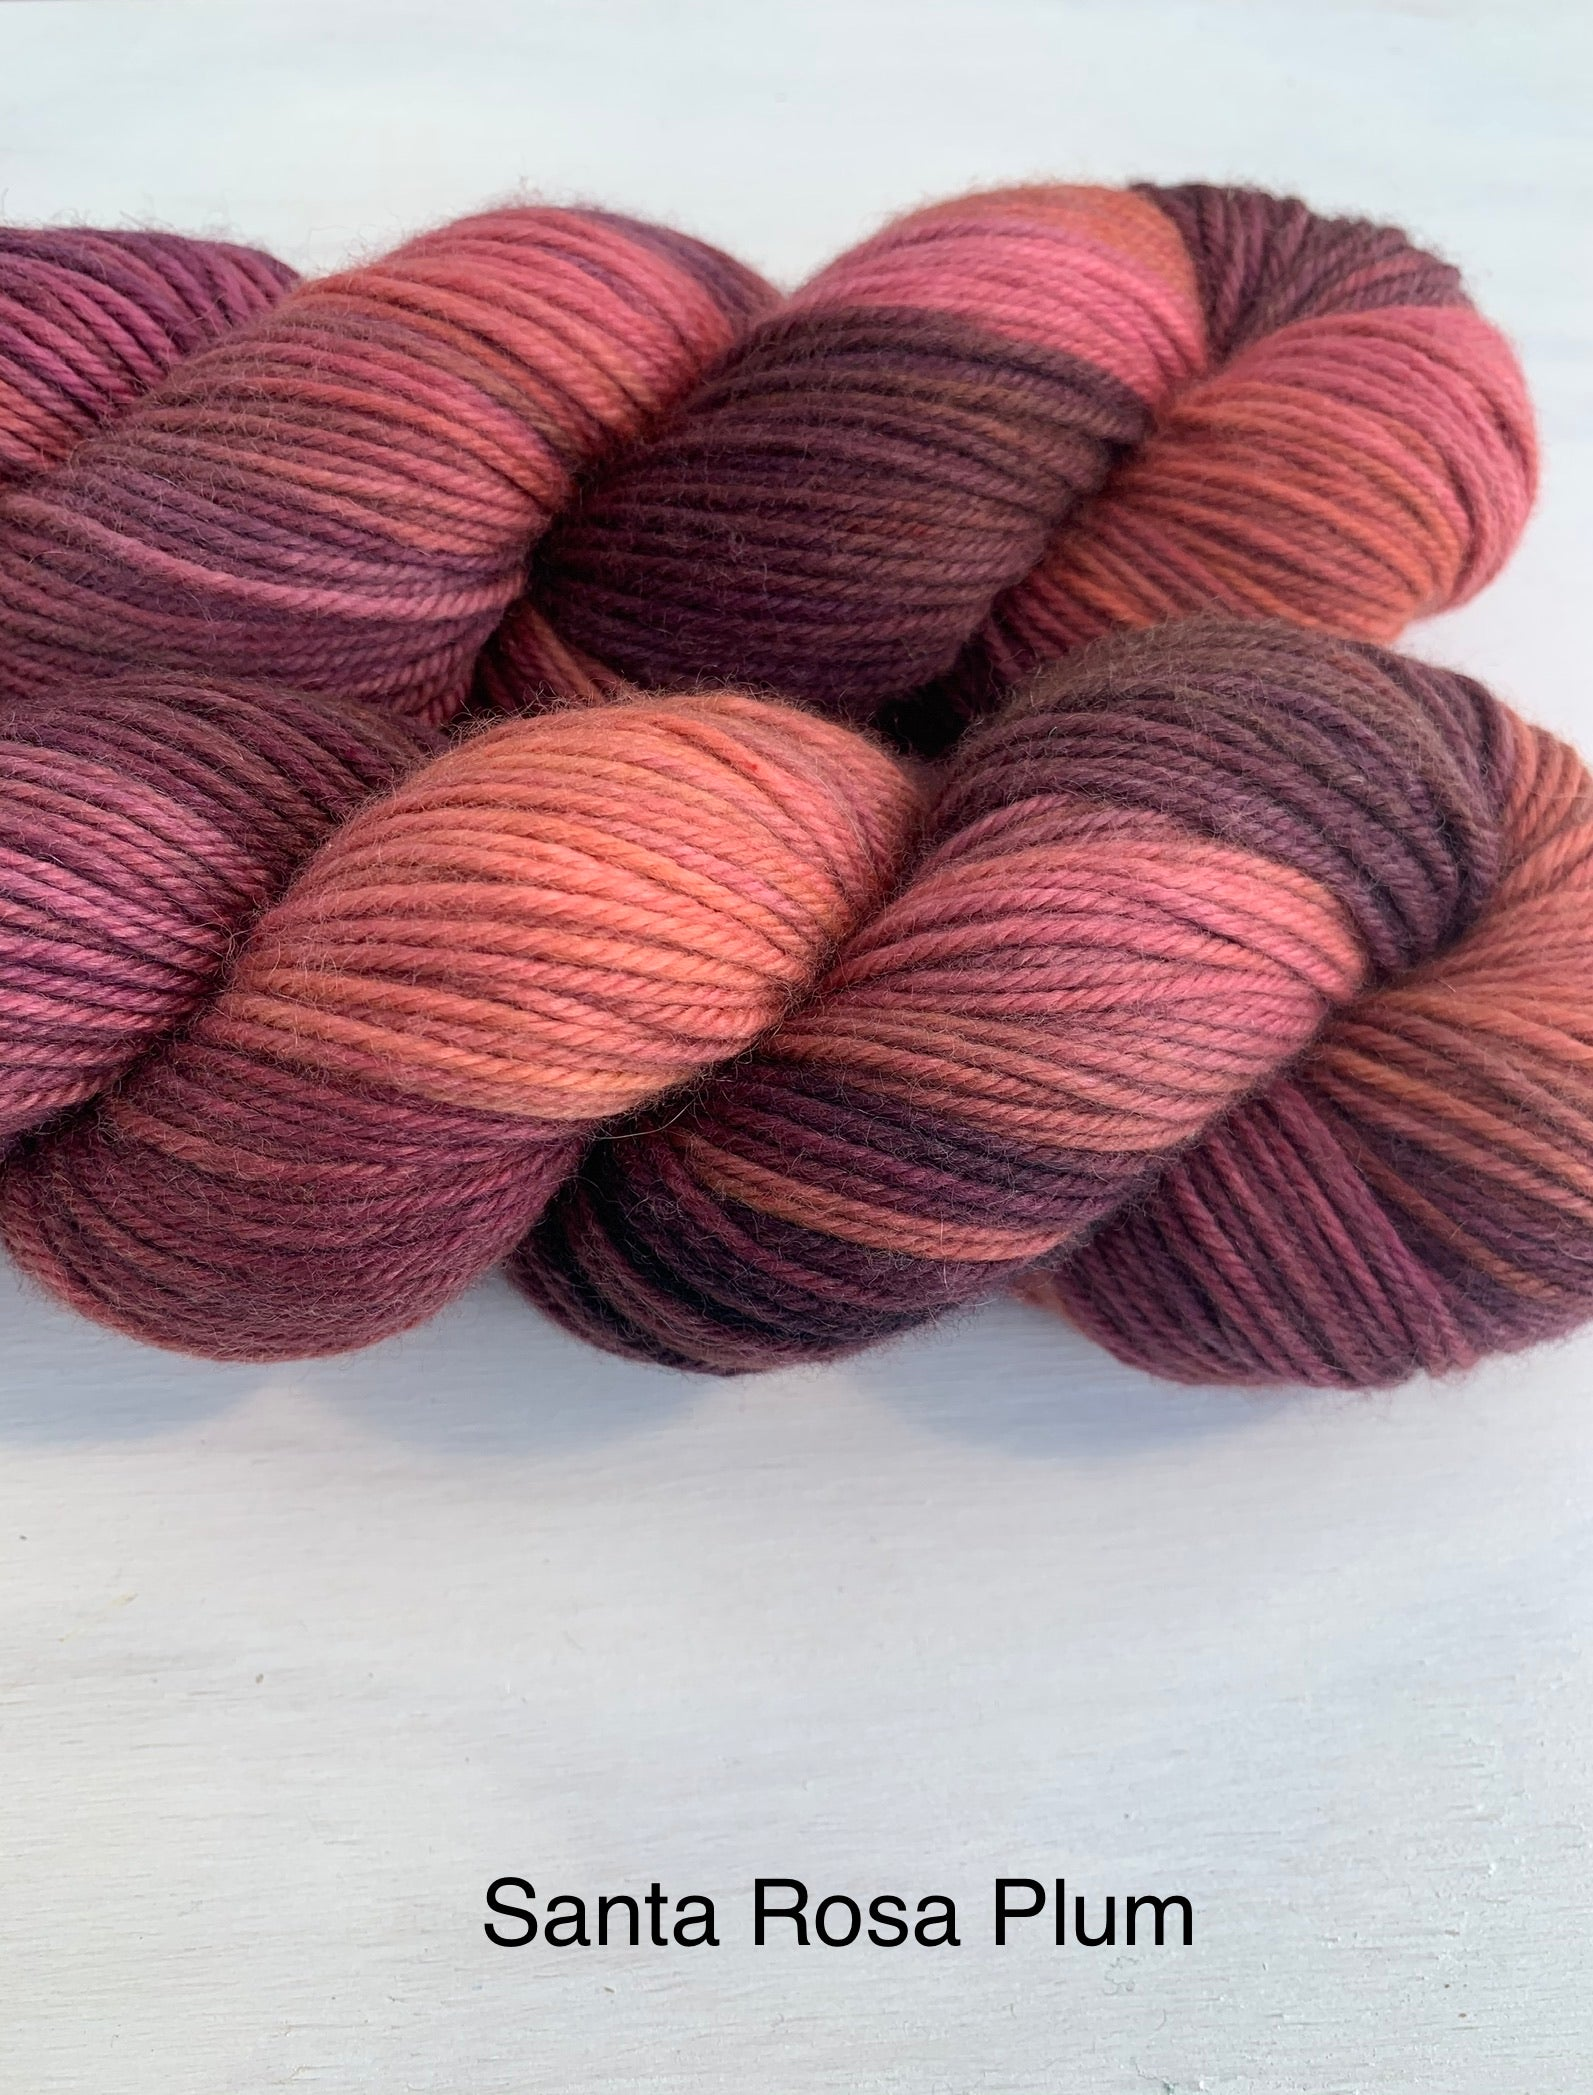 Coddiwomple MCN - Superwash Merino/Cashmere/Nylon DK Weight Yarn